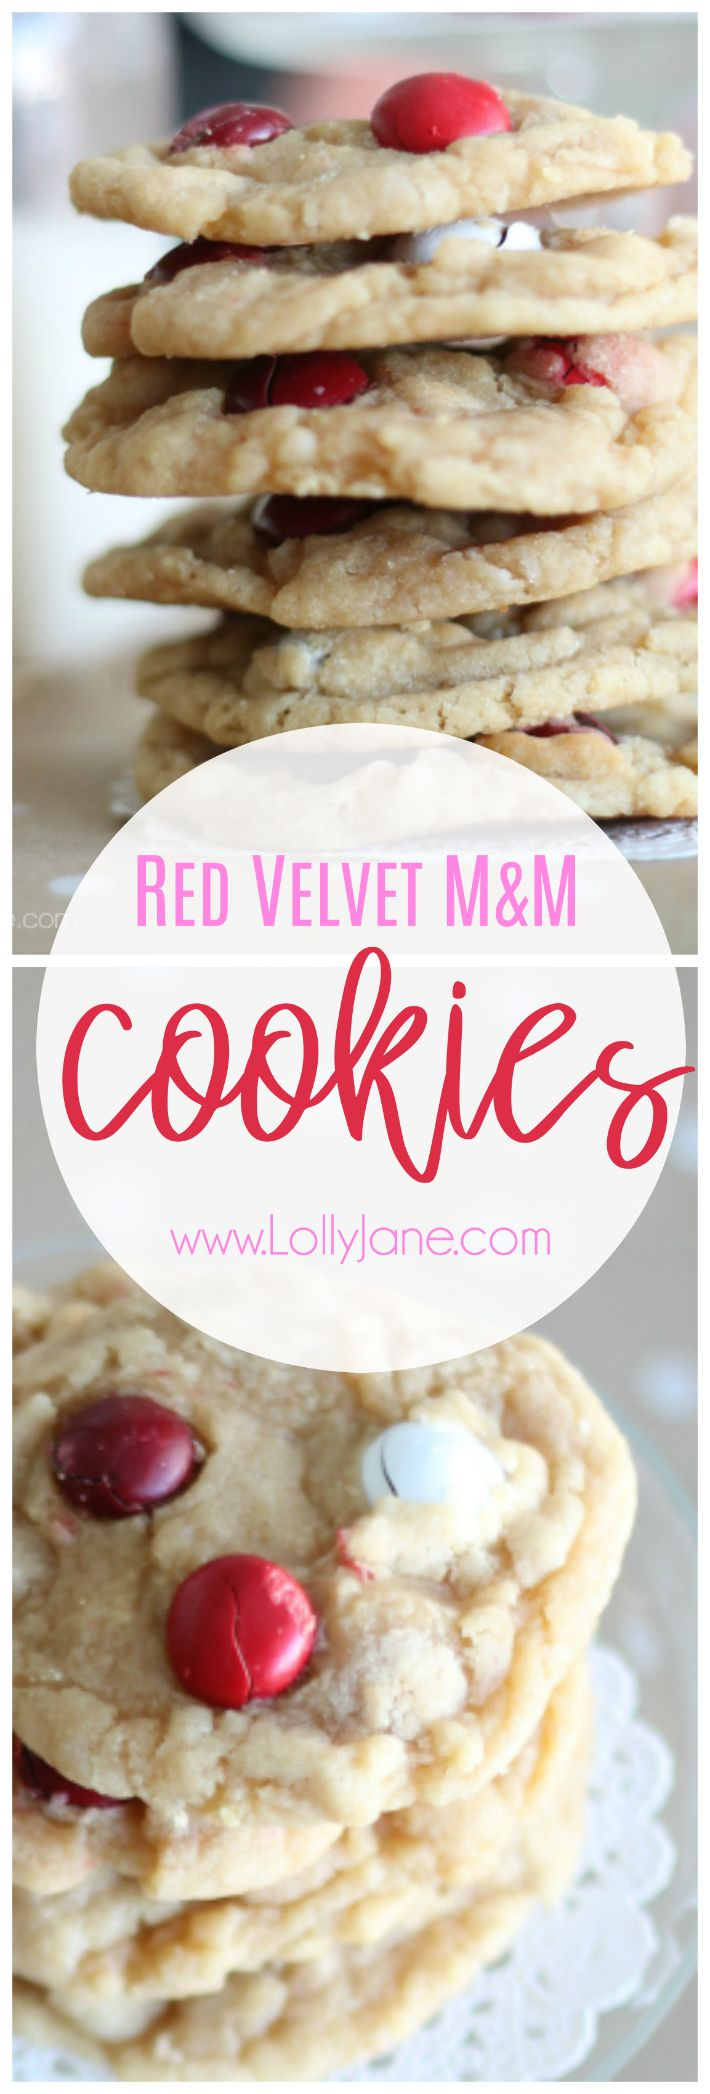 Such a yummy Red Velvet M&M cookie recipe. So easy to make! Love this simple Valentine's Day cookie recipe, super kid friendly cookies!